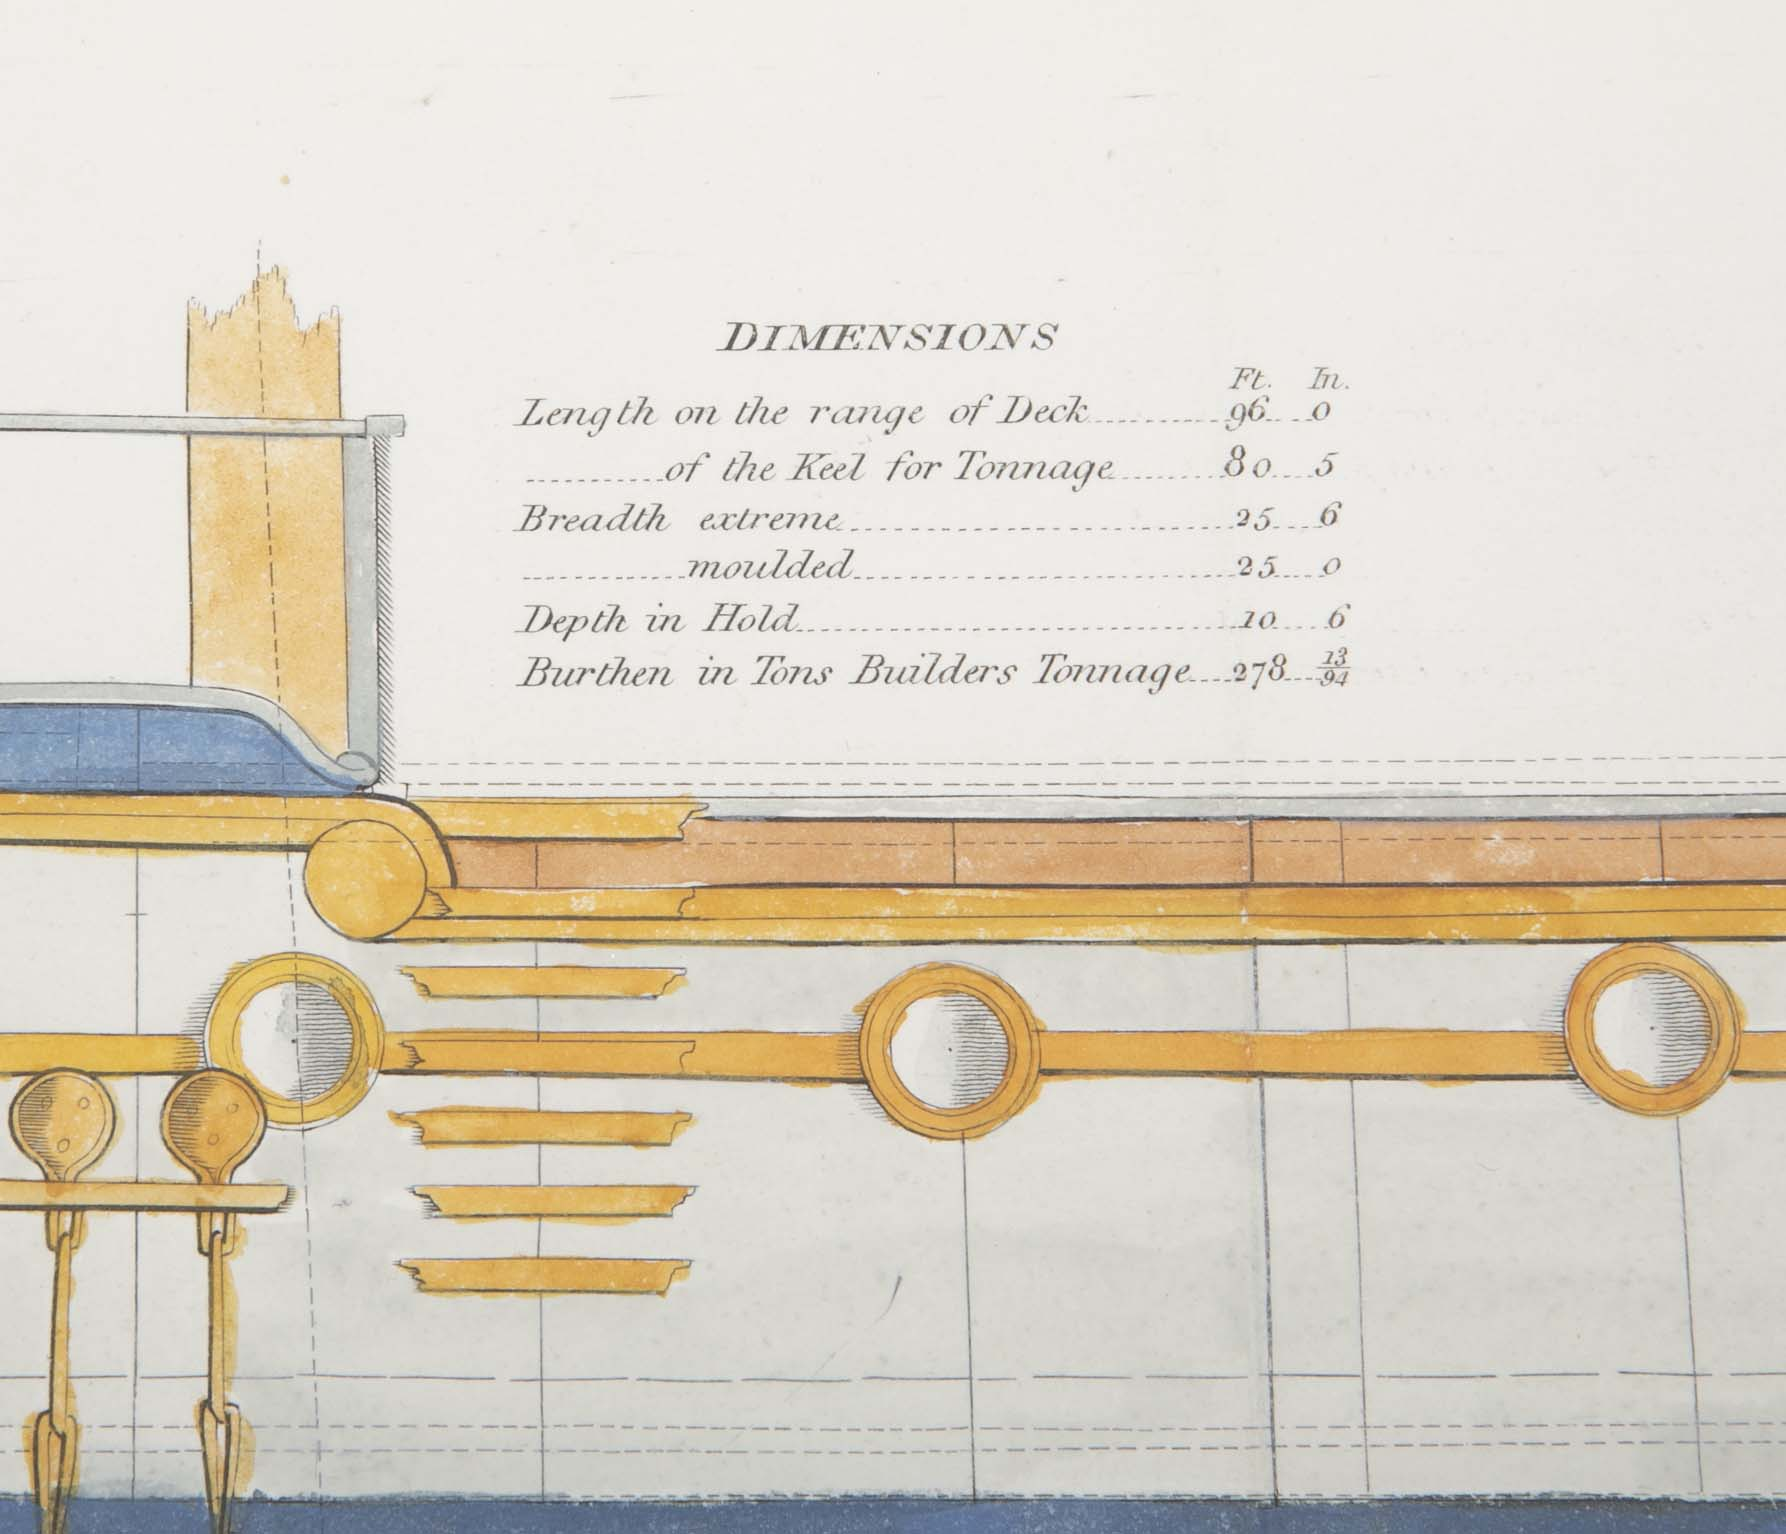 Naval Architectural Plan of the Royal Sovereign Yacht, Early 19th Century